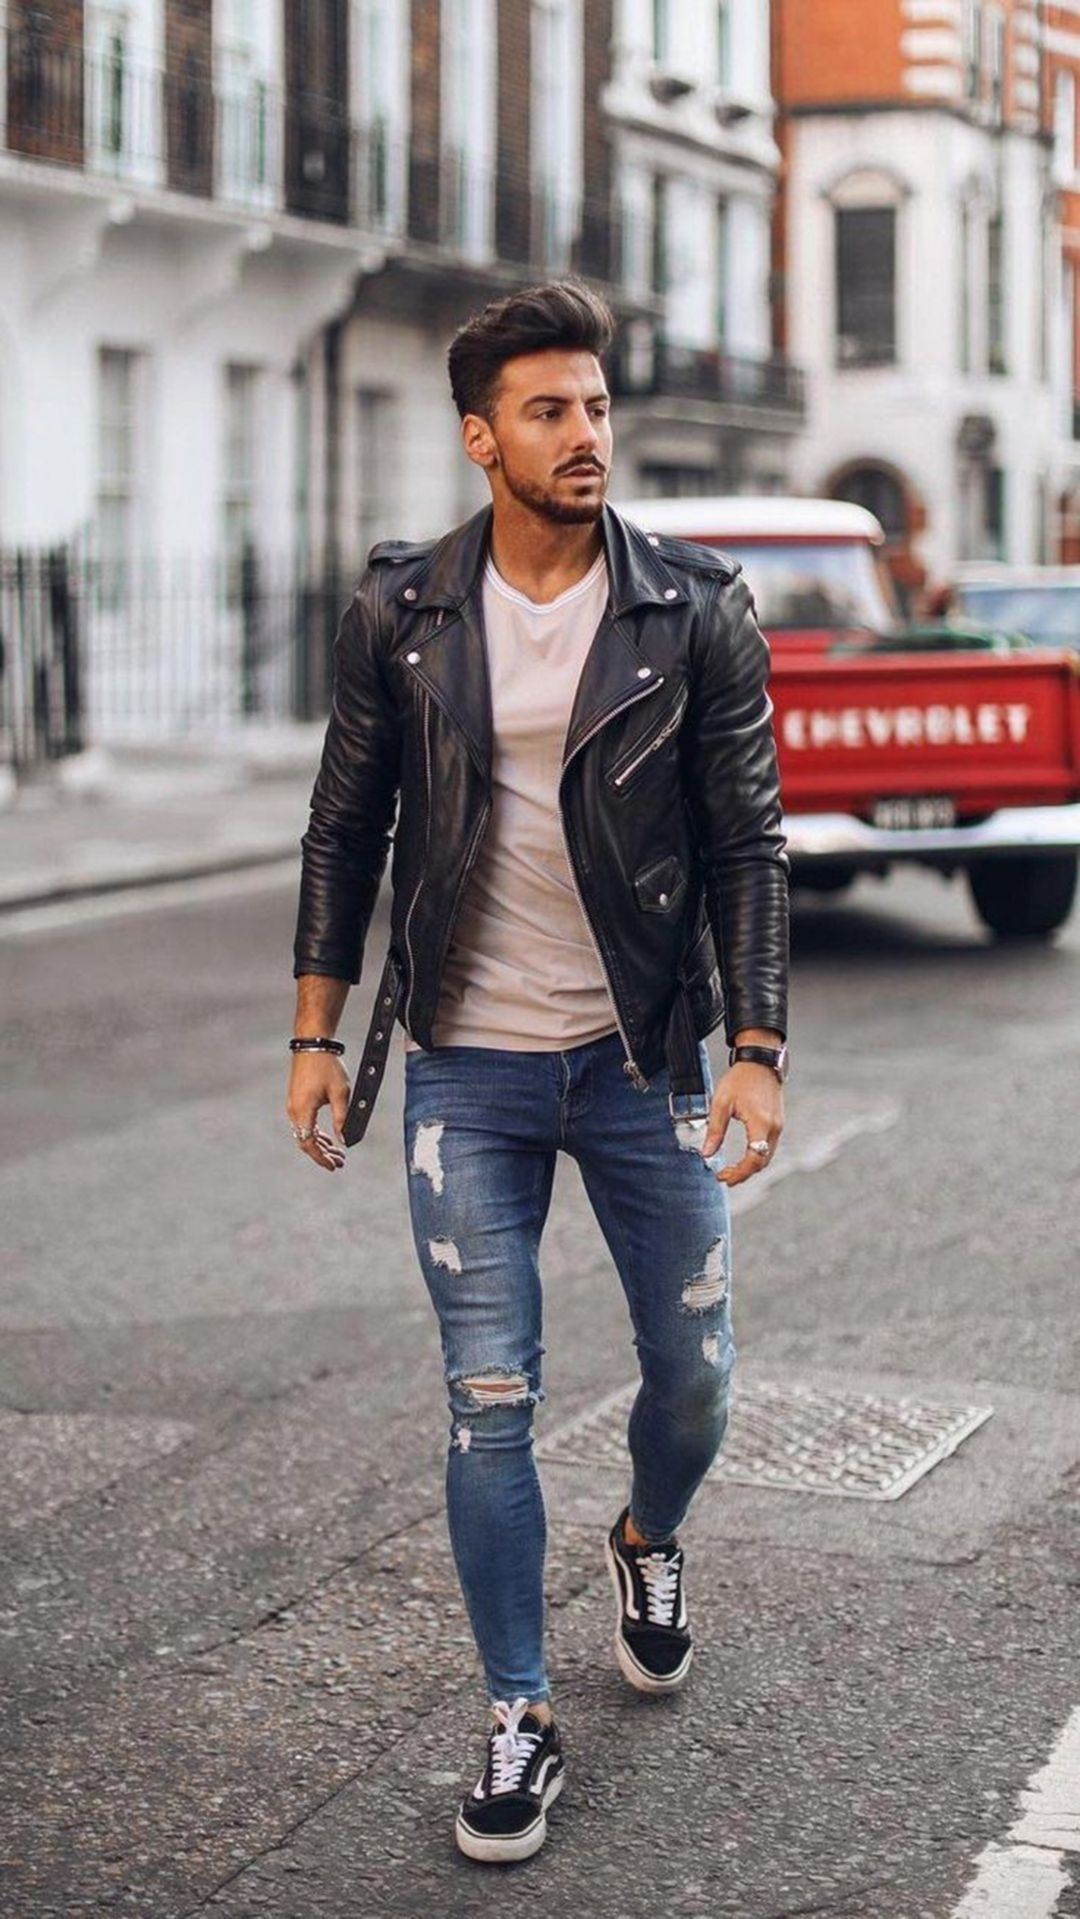 10 Cool Men's Outfit Styles You Can Copy For Dating (With